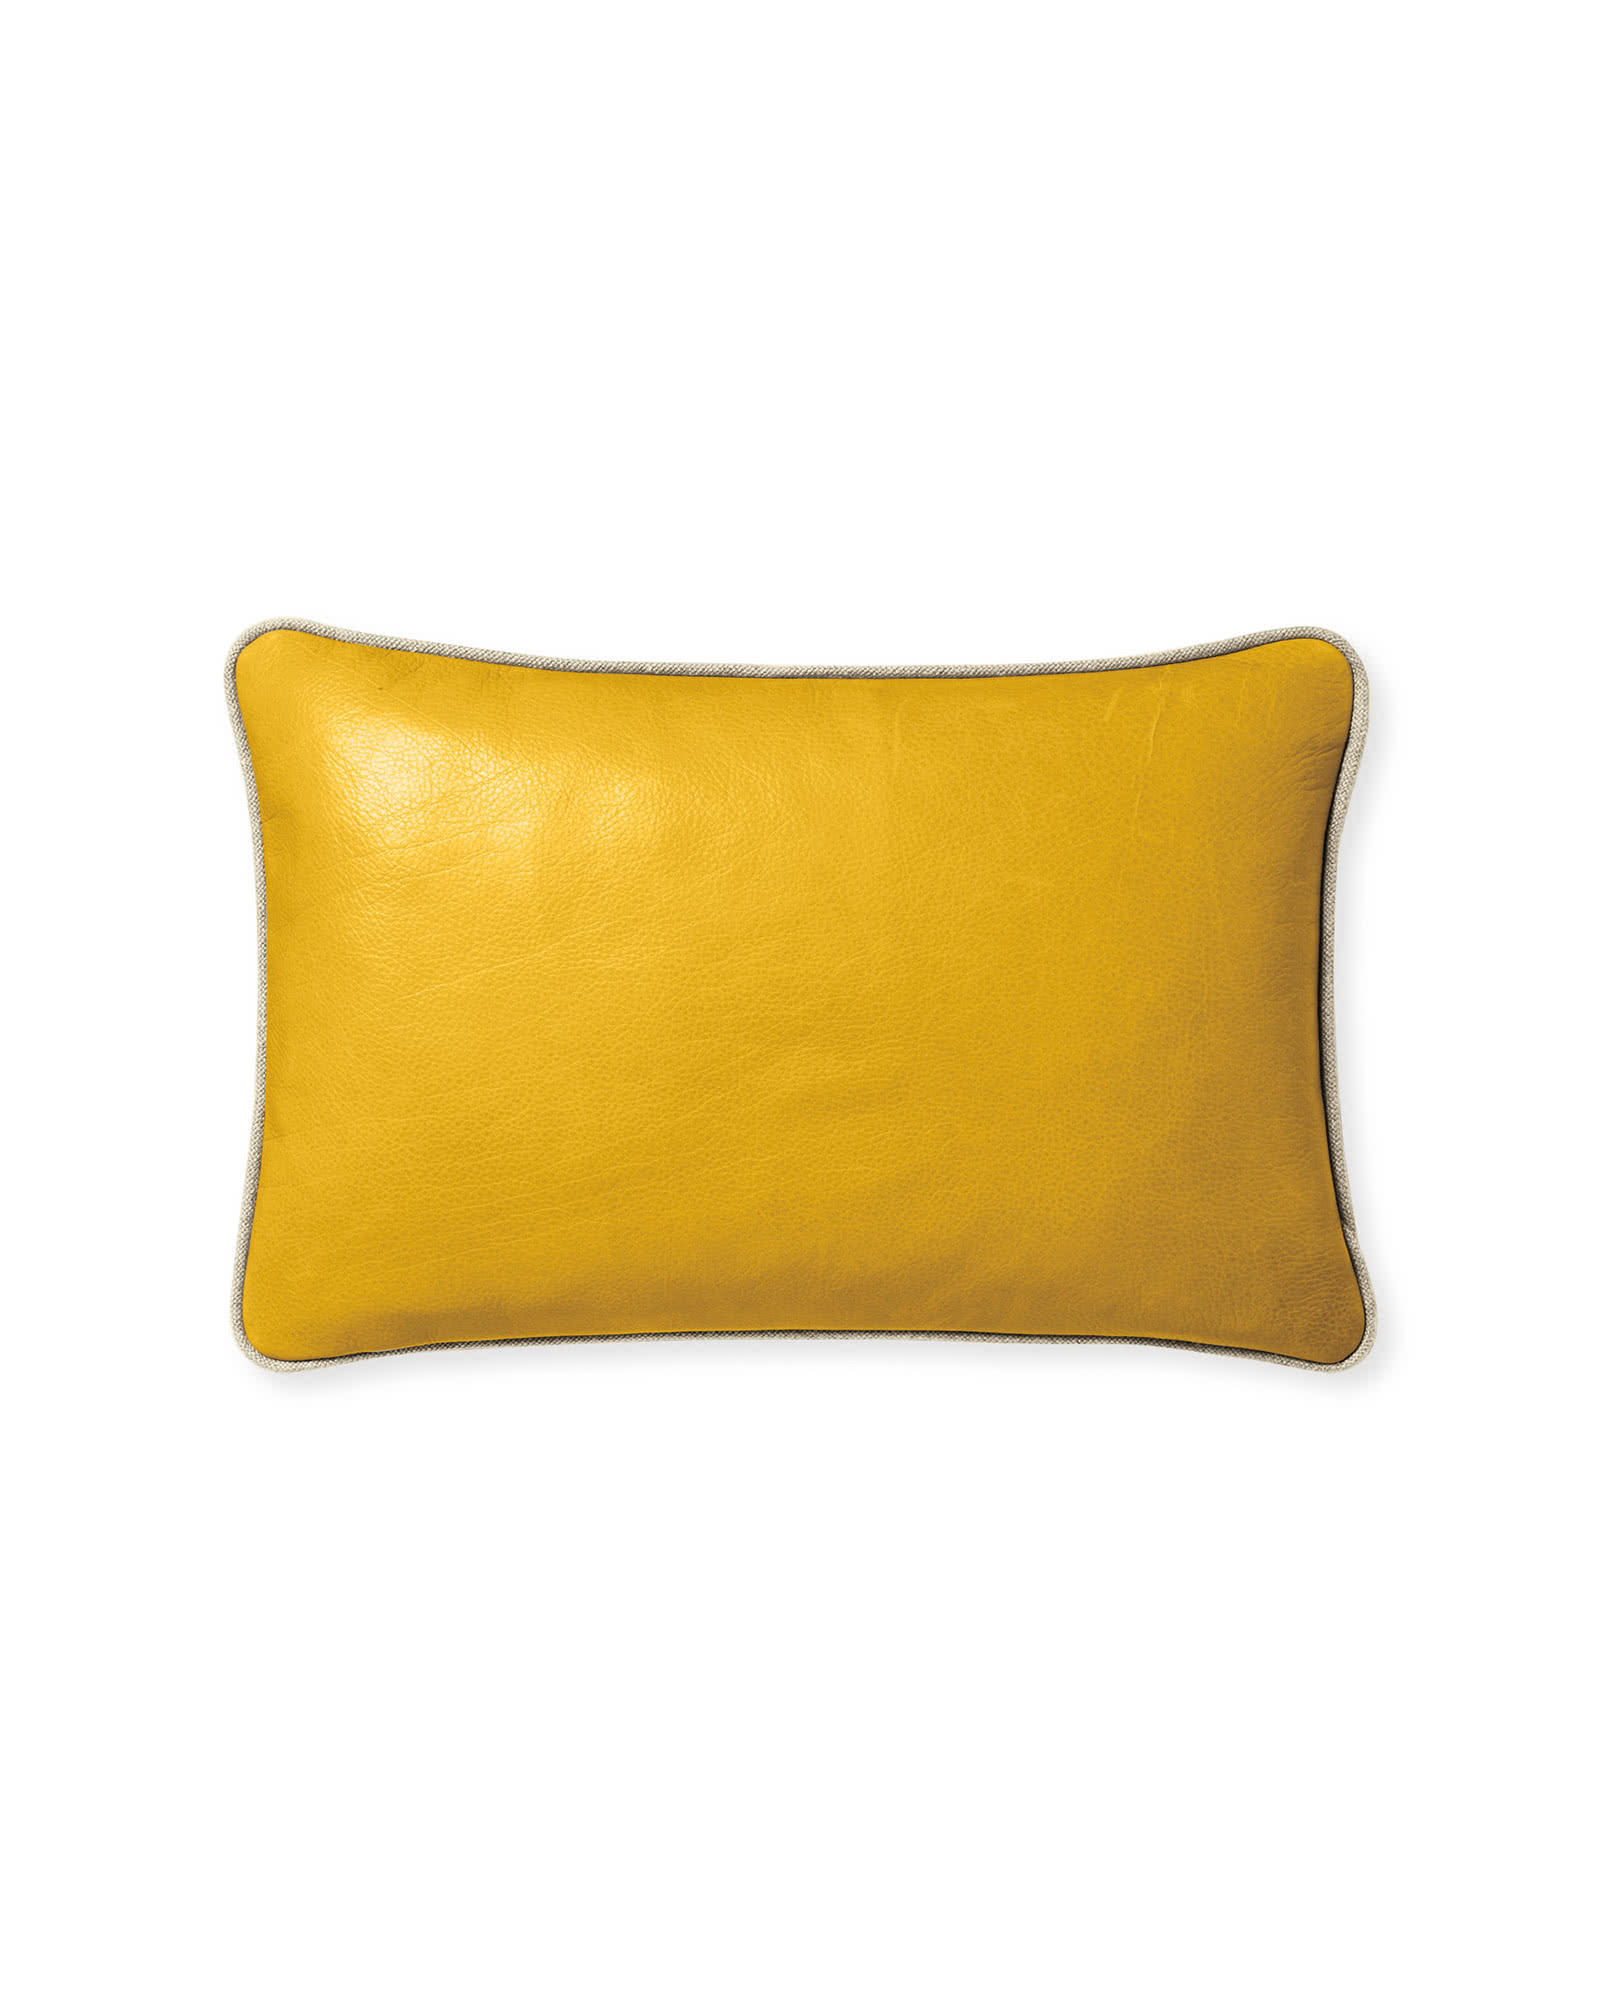 Leather Pillow Cover, Ochre